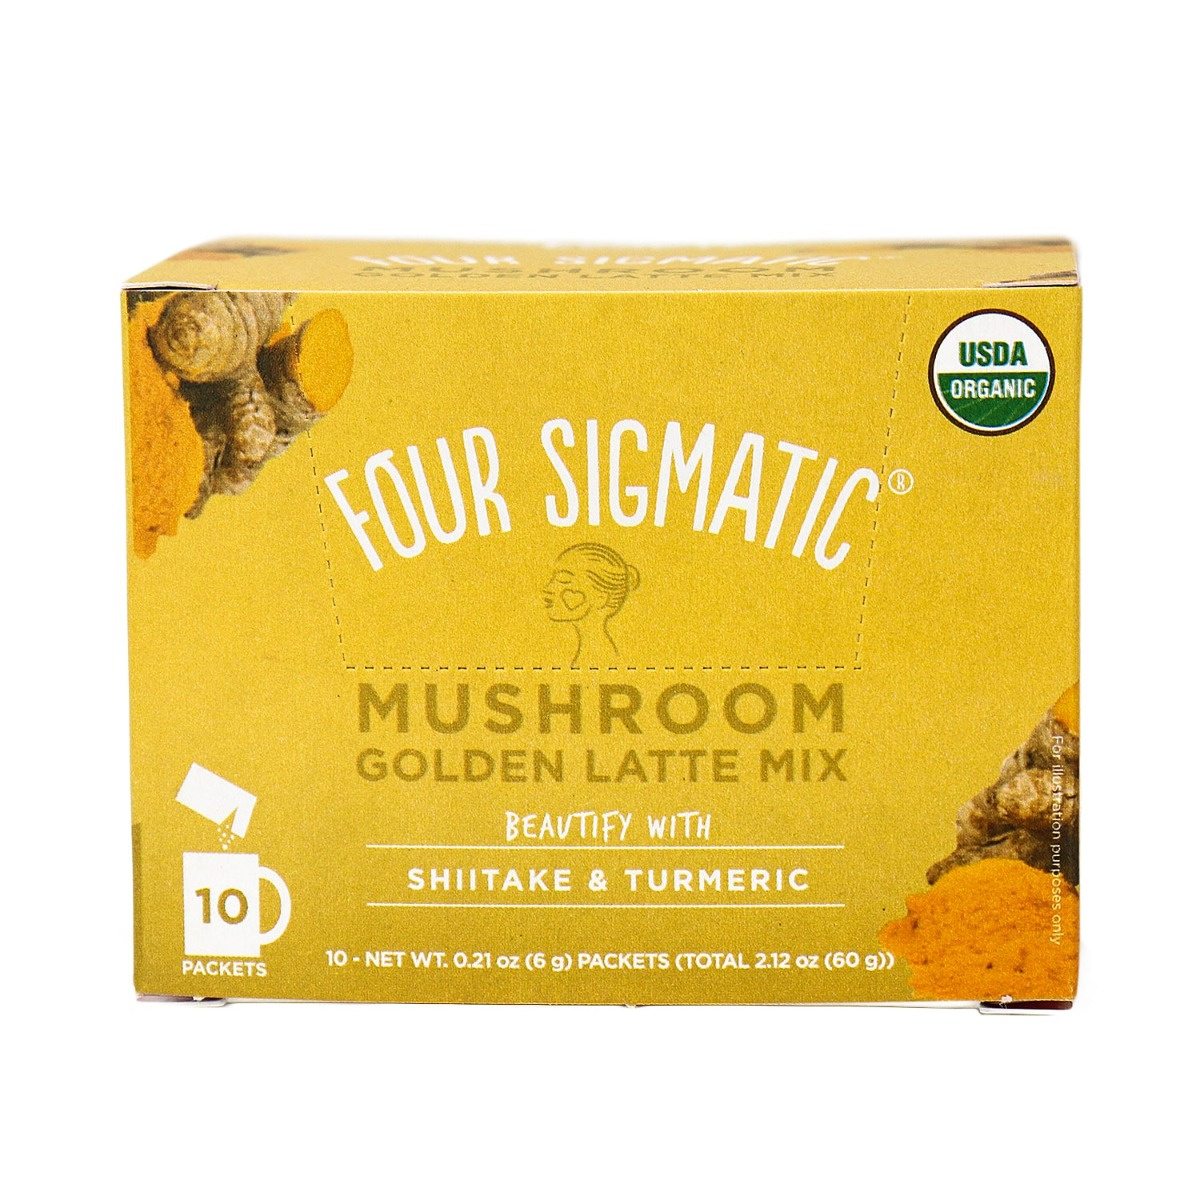 Four Sigmatic Mushroom Golden Latte Mix With Shiitake